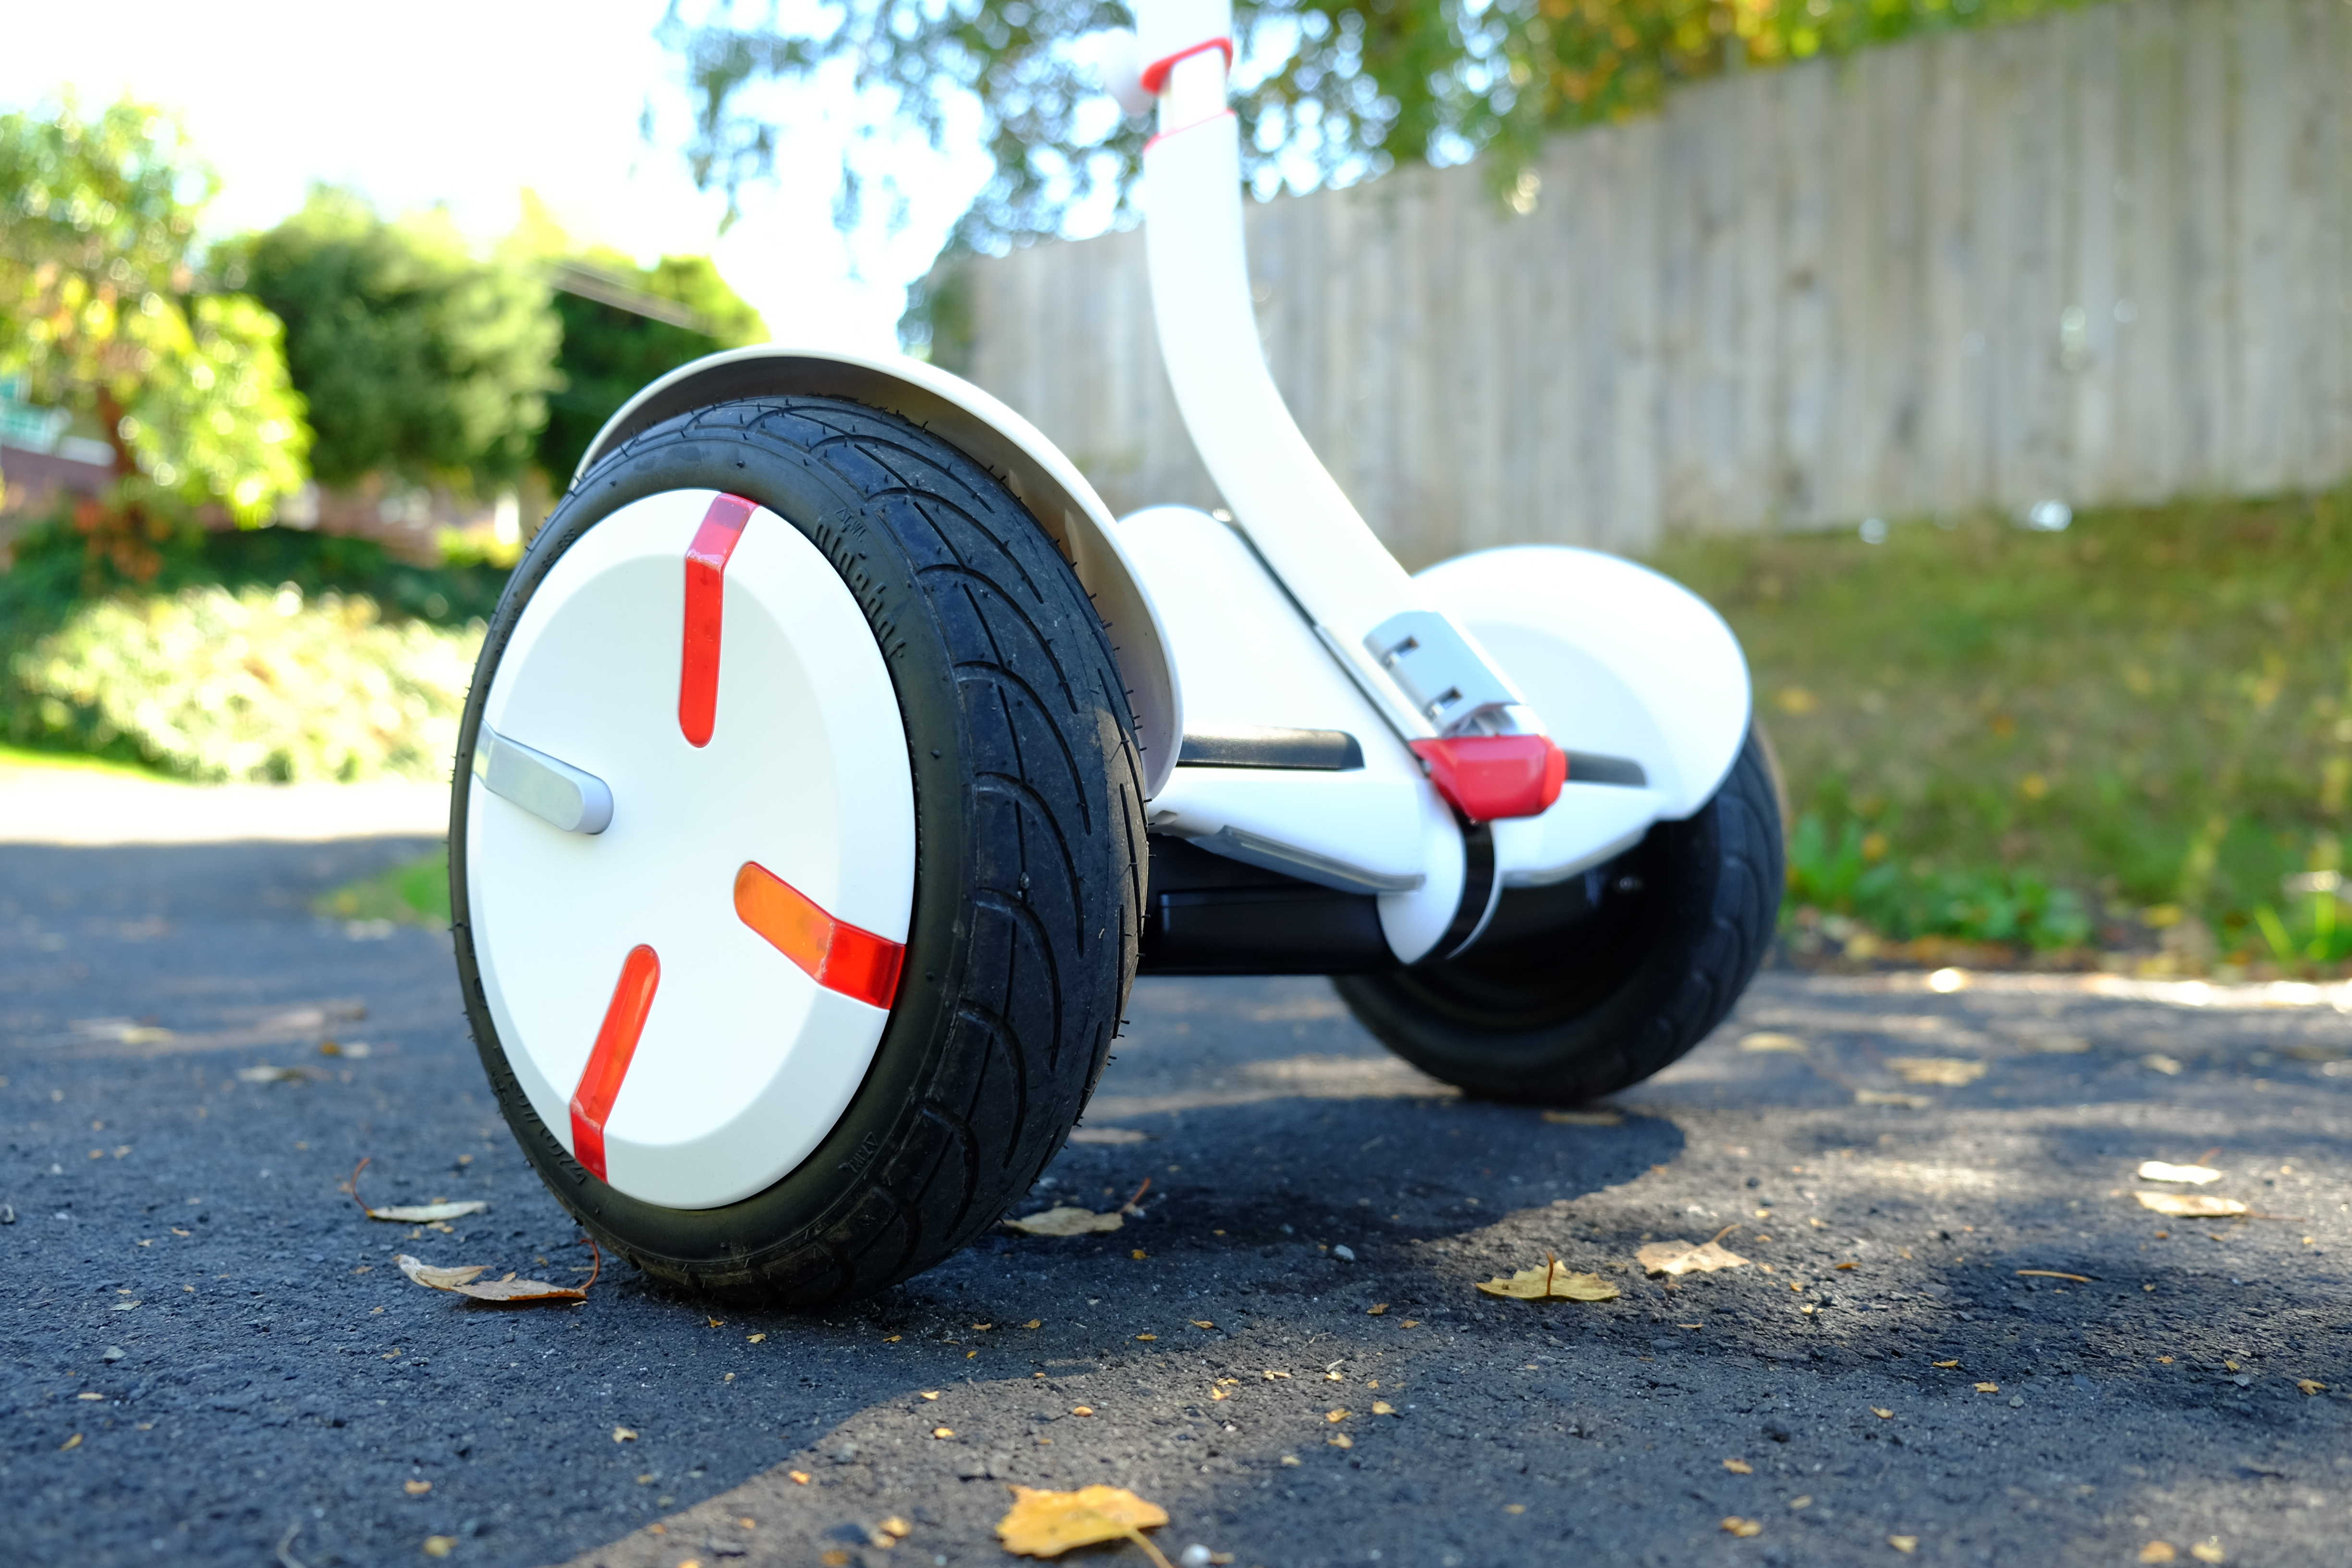 Segway miniPRO review: This machine makes hoverboards great